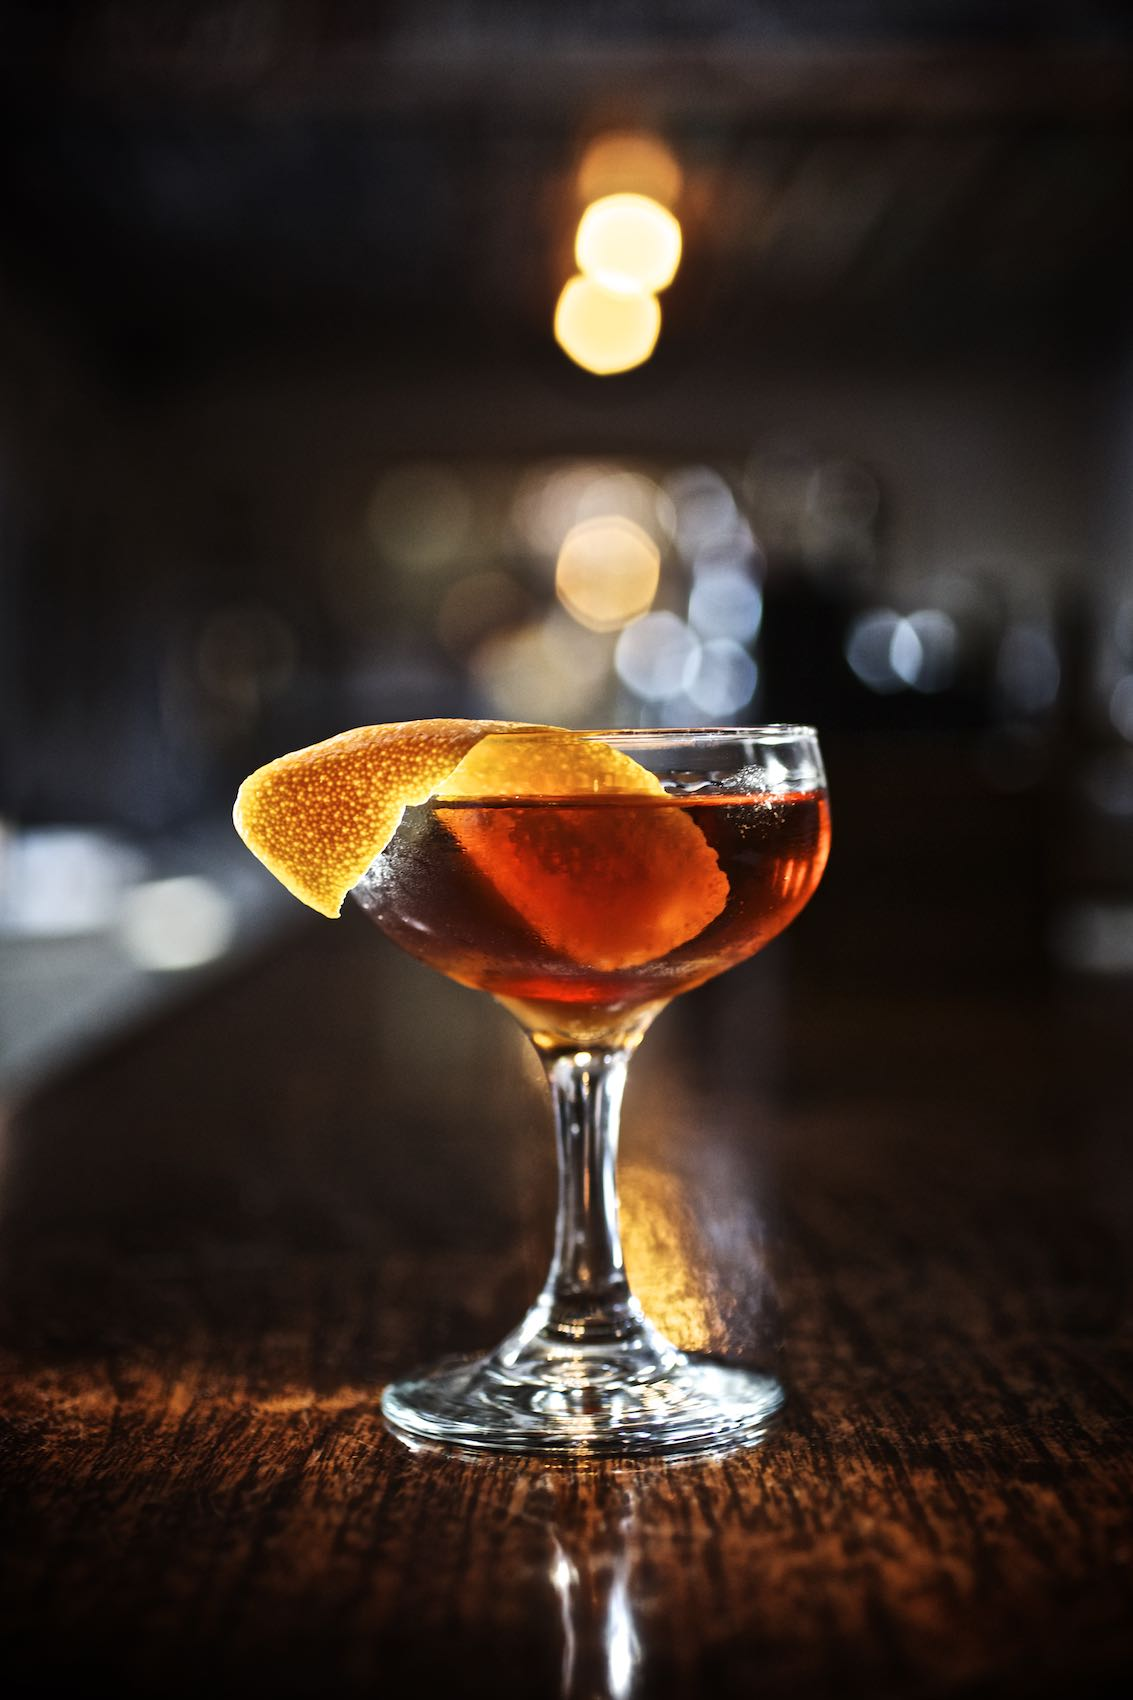 Jody Horton Photography - Red cocktail in coupe glass with orange garnish at Whisler